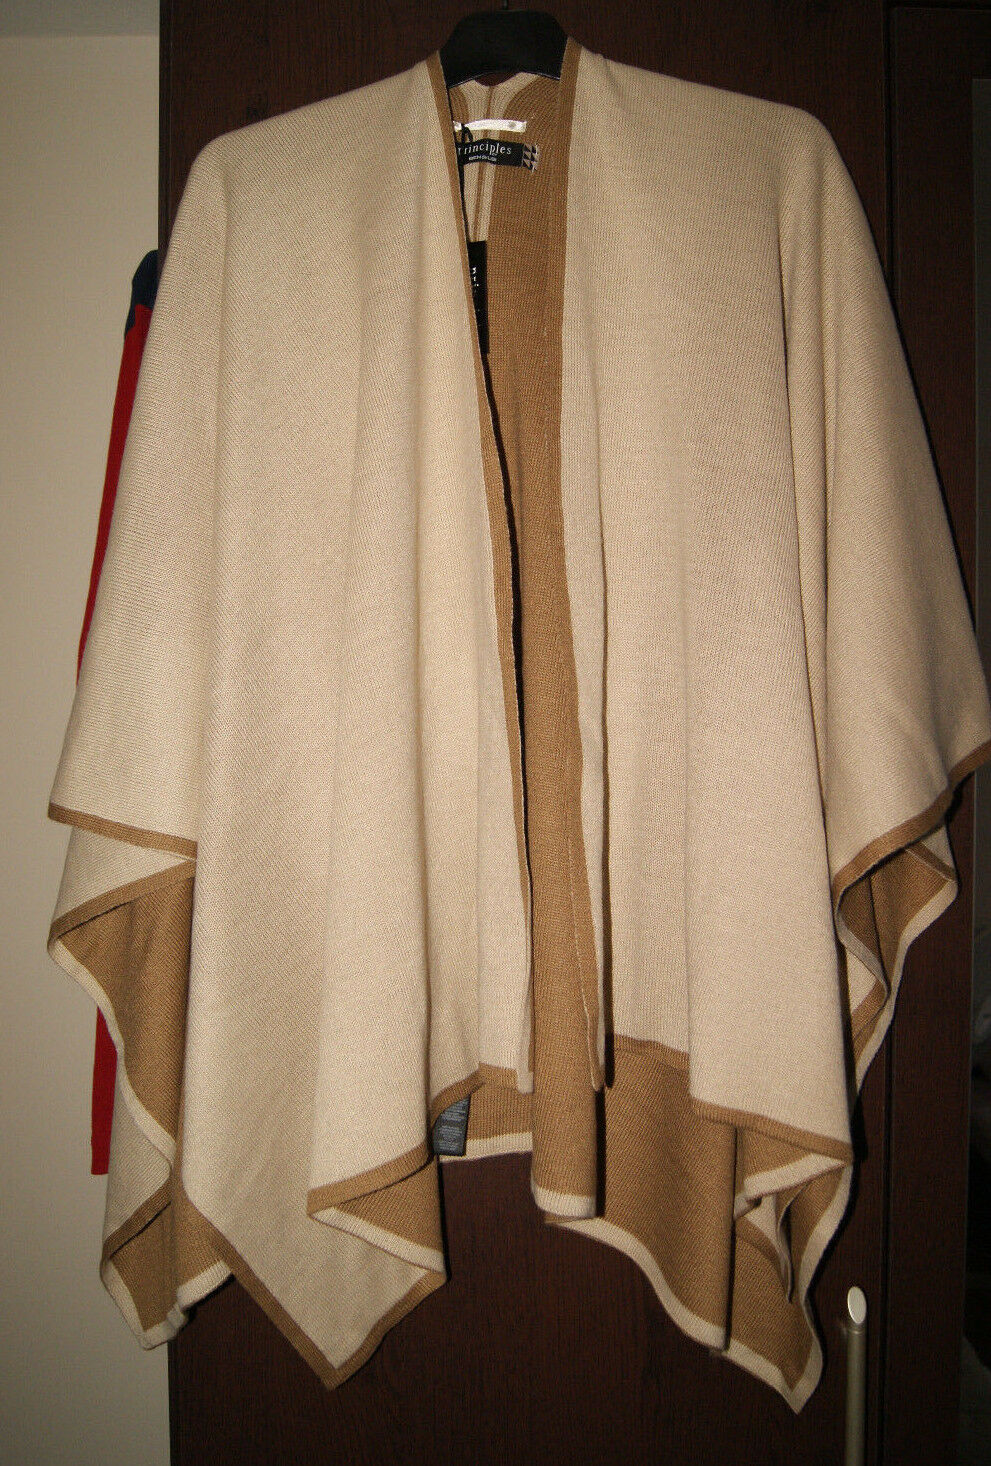 Principles Ben De Lisi BNWT Ladies Cape Poncho Shawl Over Wrap Cardigan One Size